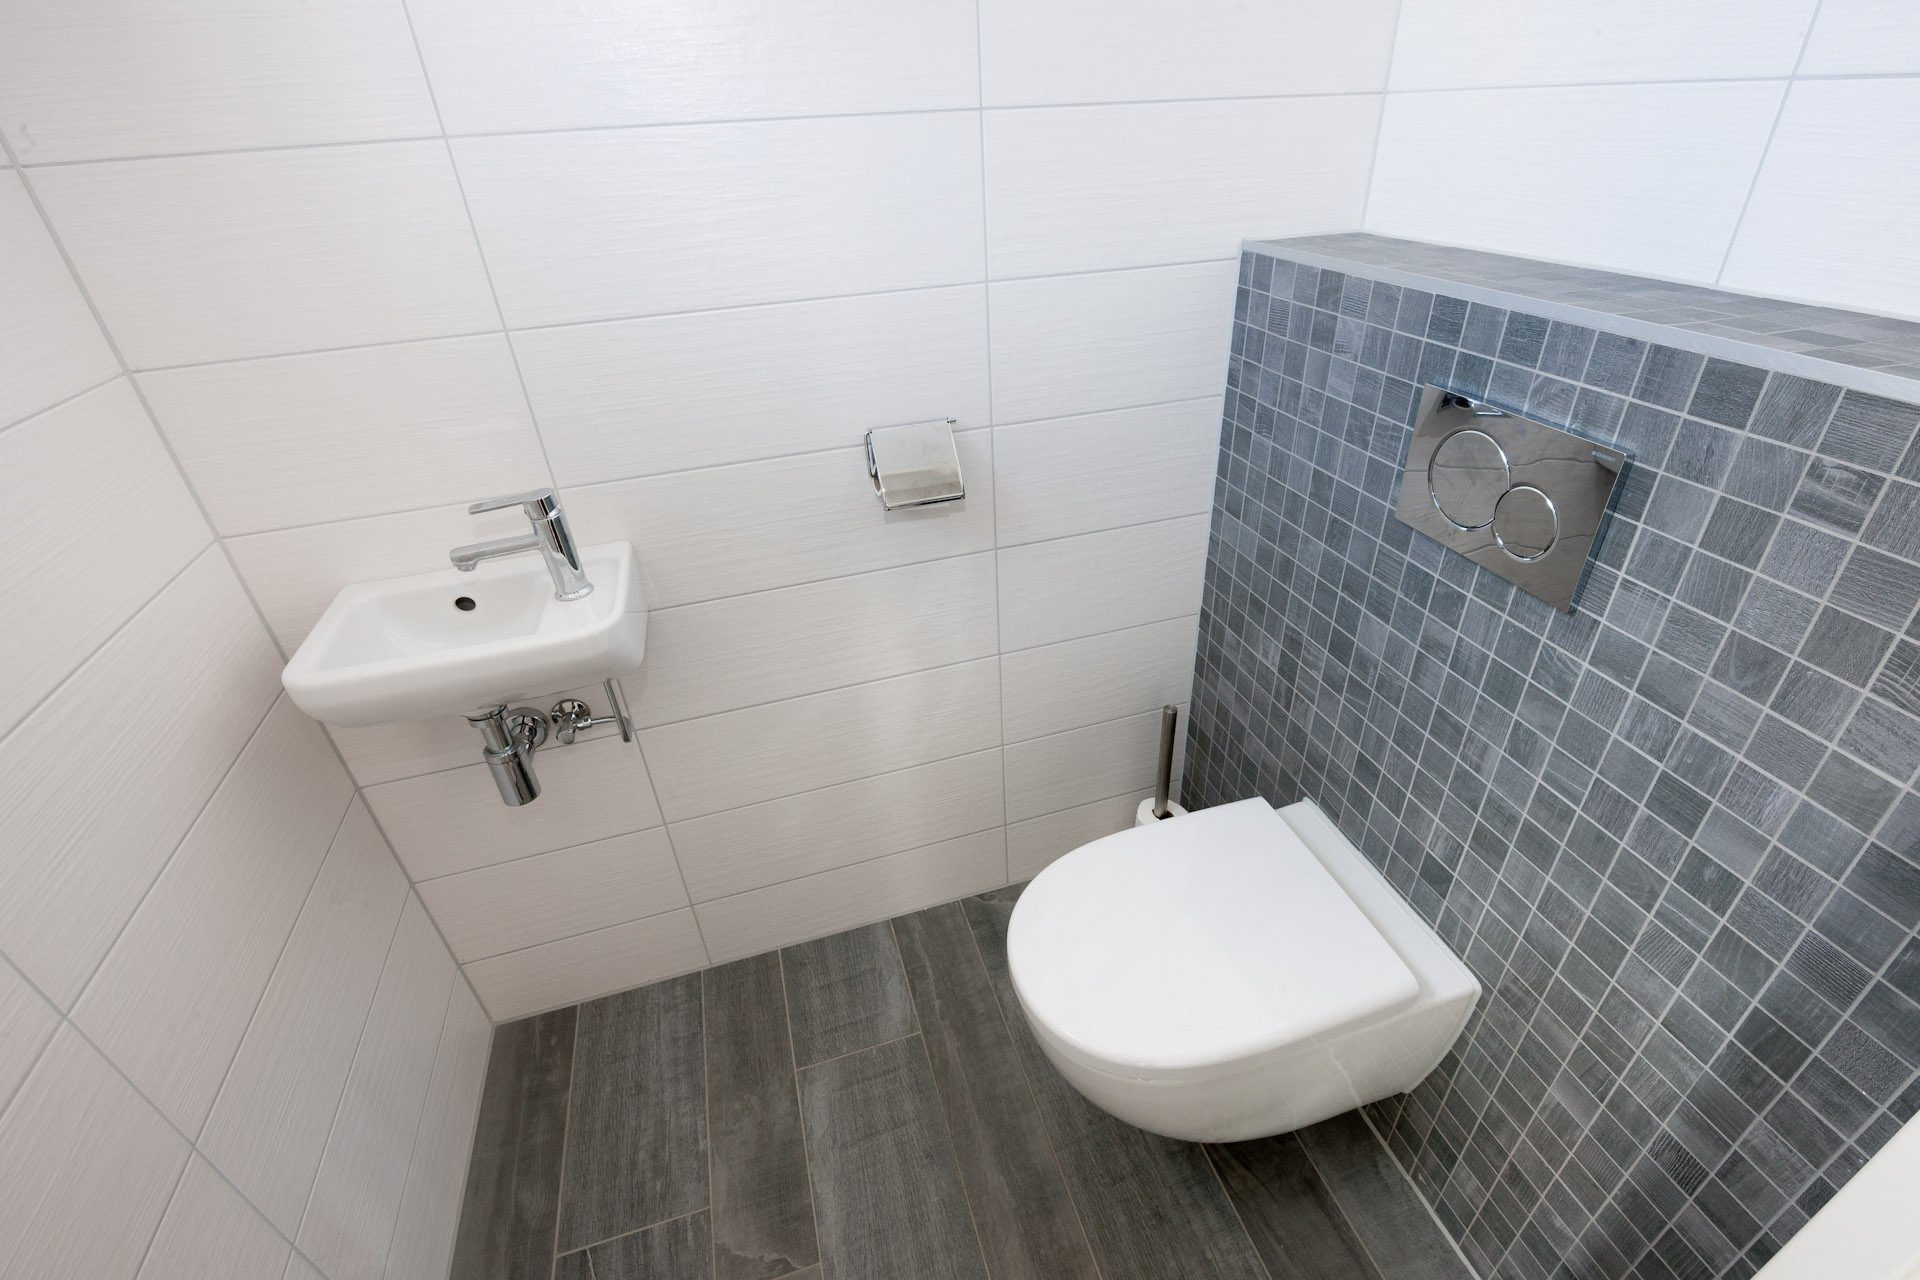 Houtlook Tegels In Woonkamer En Moza 239 Ek In Toilet Kroon